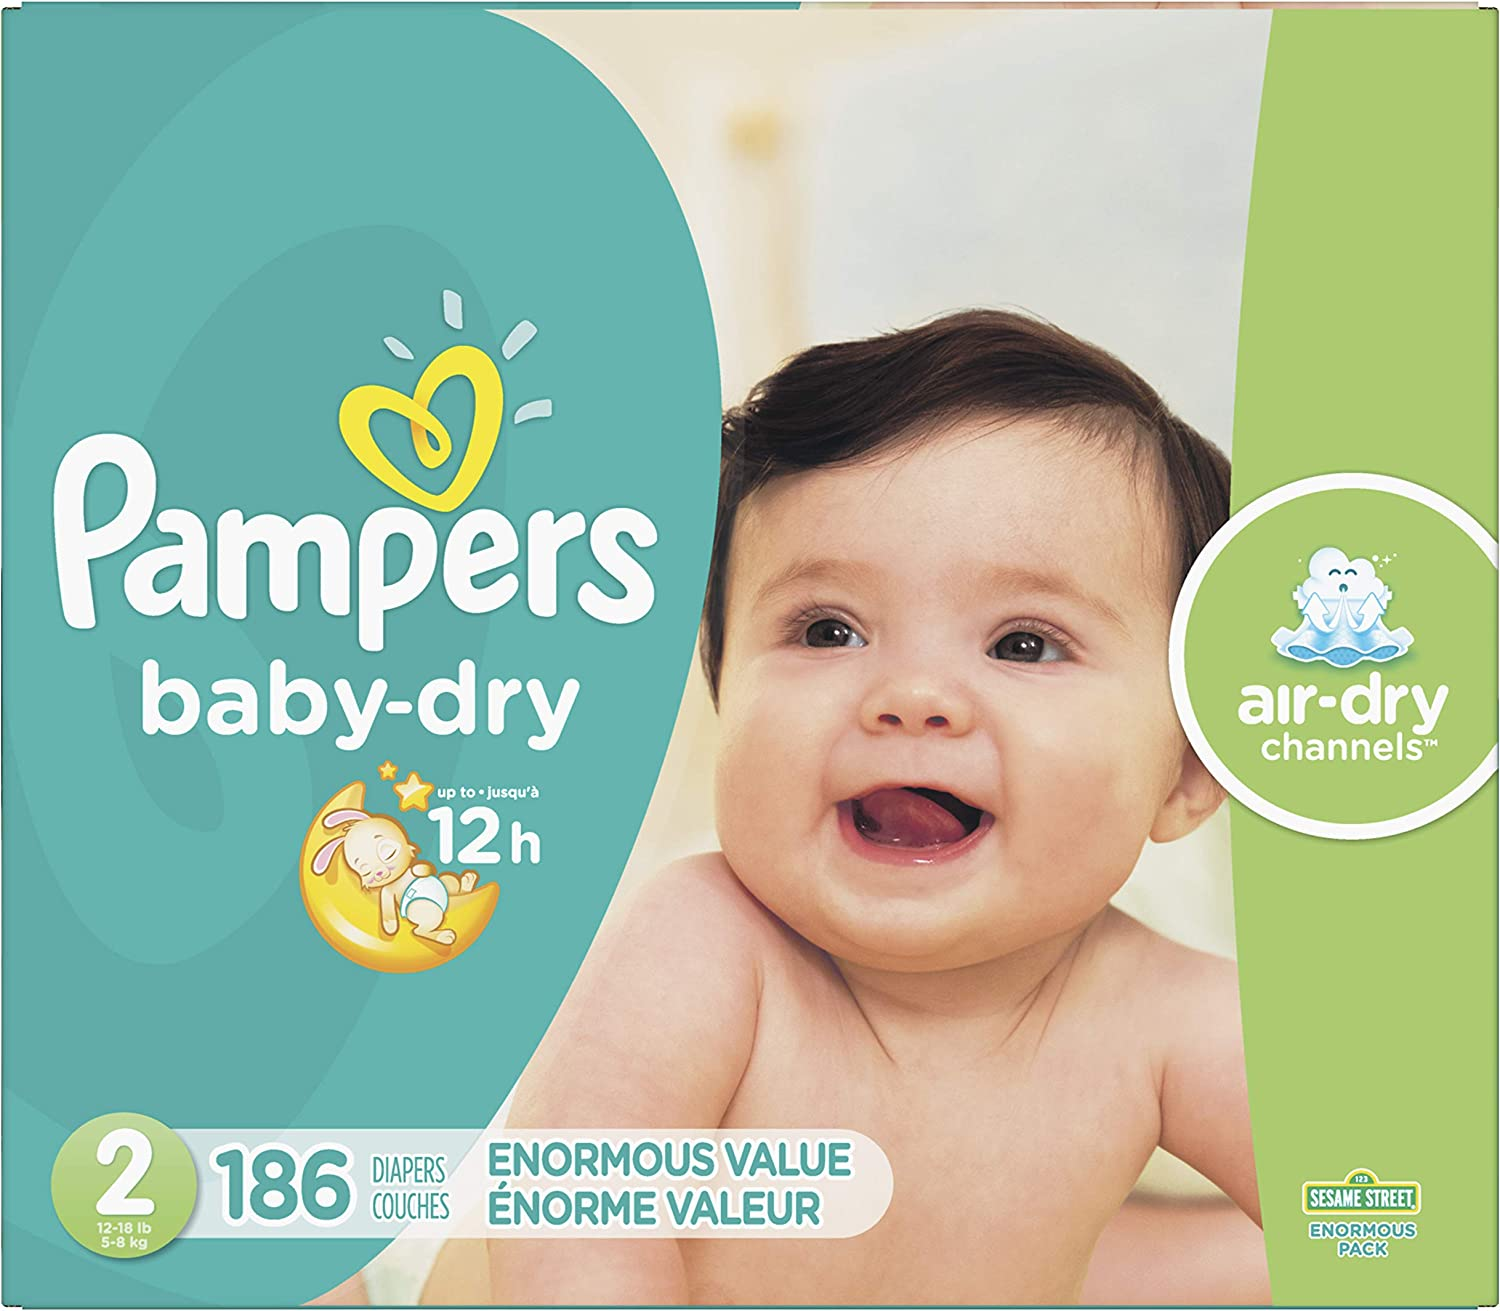 Diapers Size 2, 186 Count - Pampers Baby Dry Disposable Baby Diapers, Enormous Pack